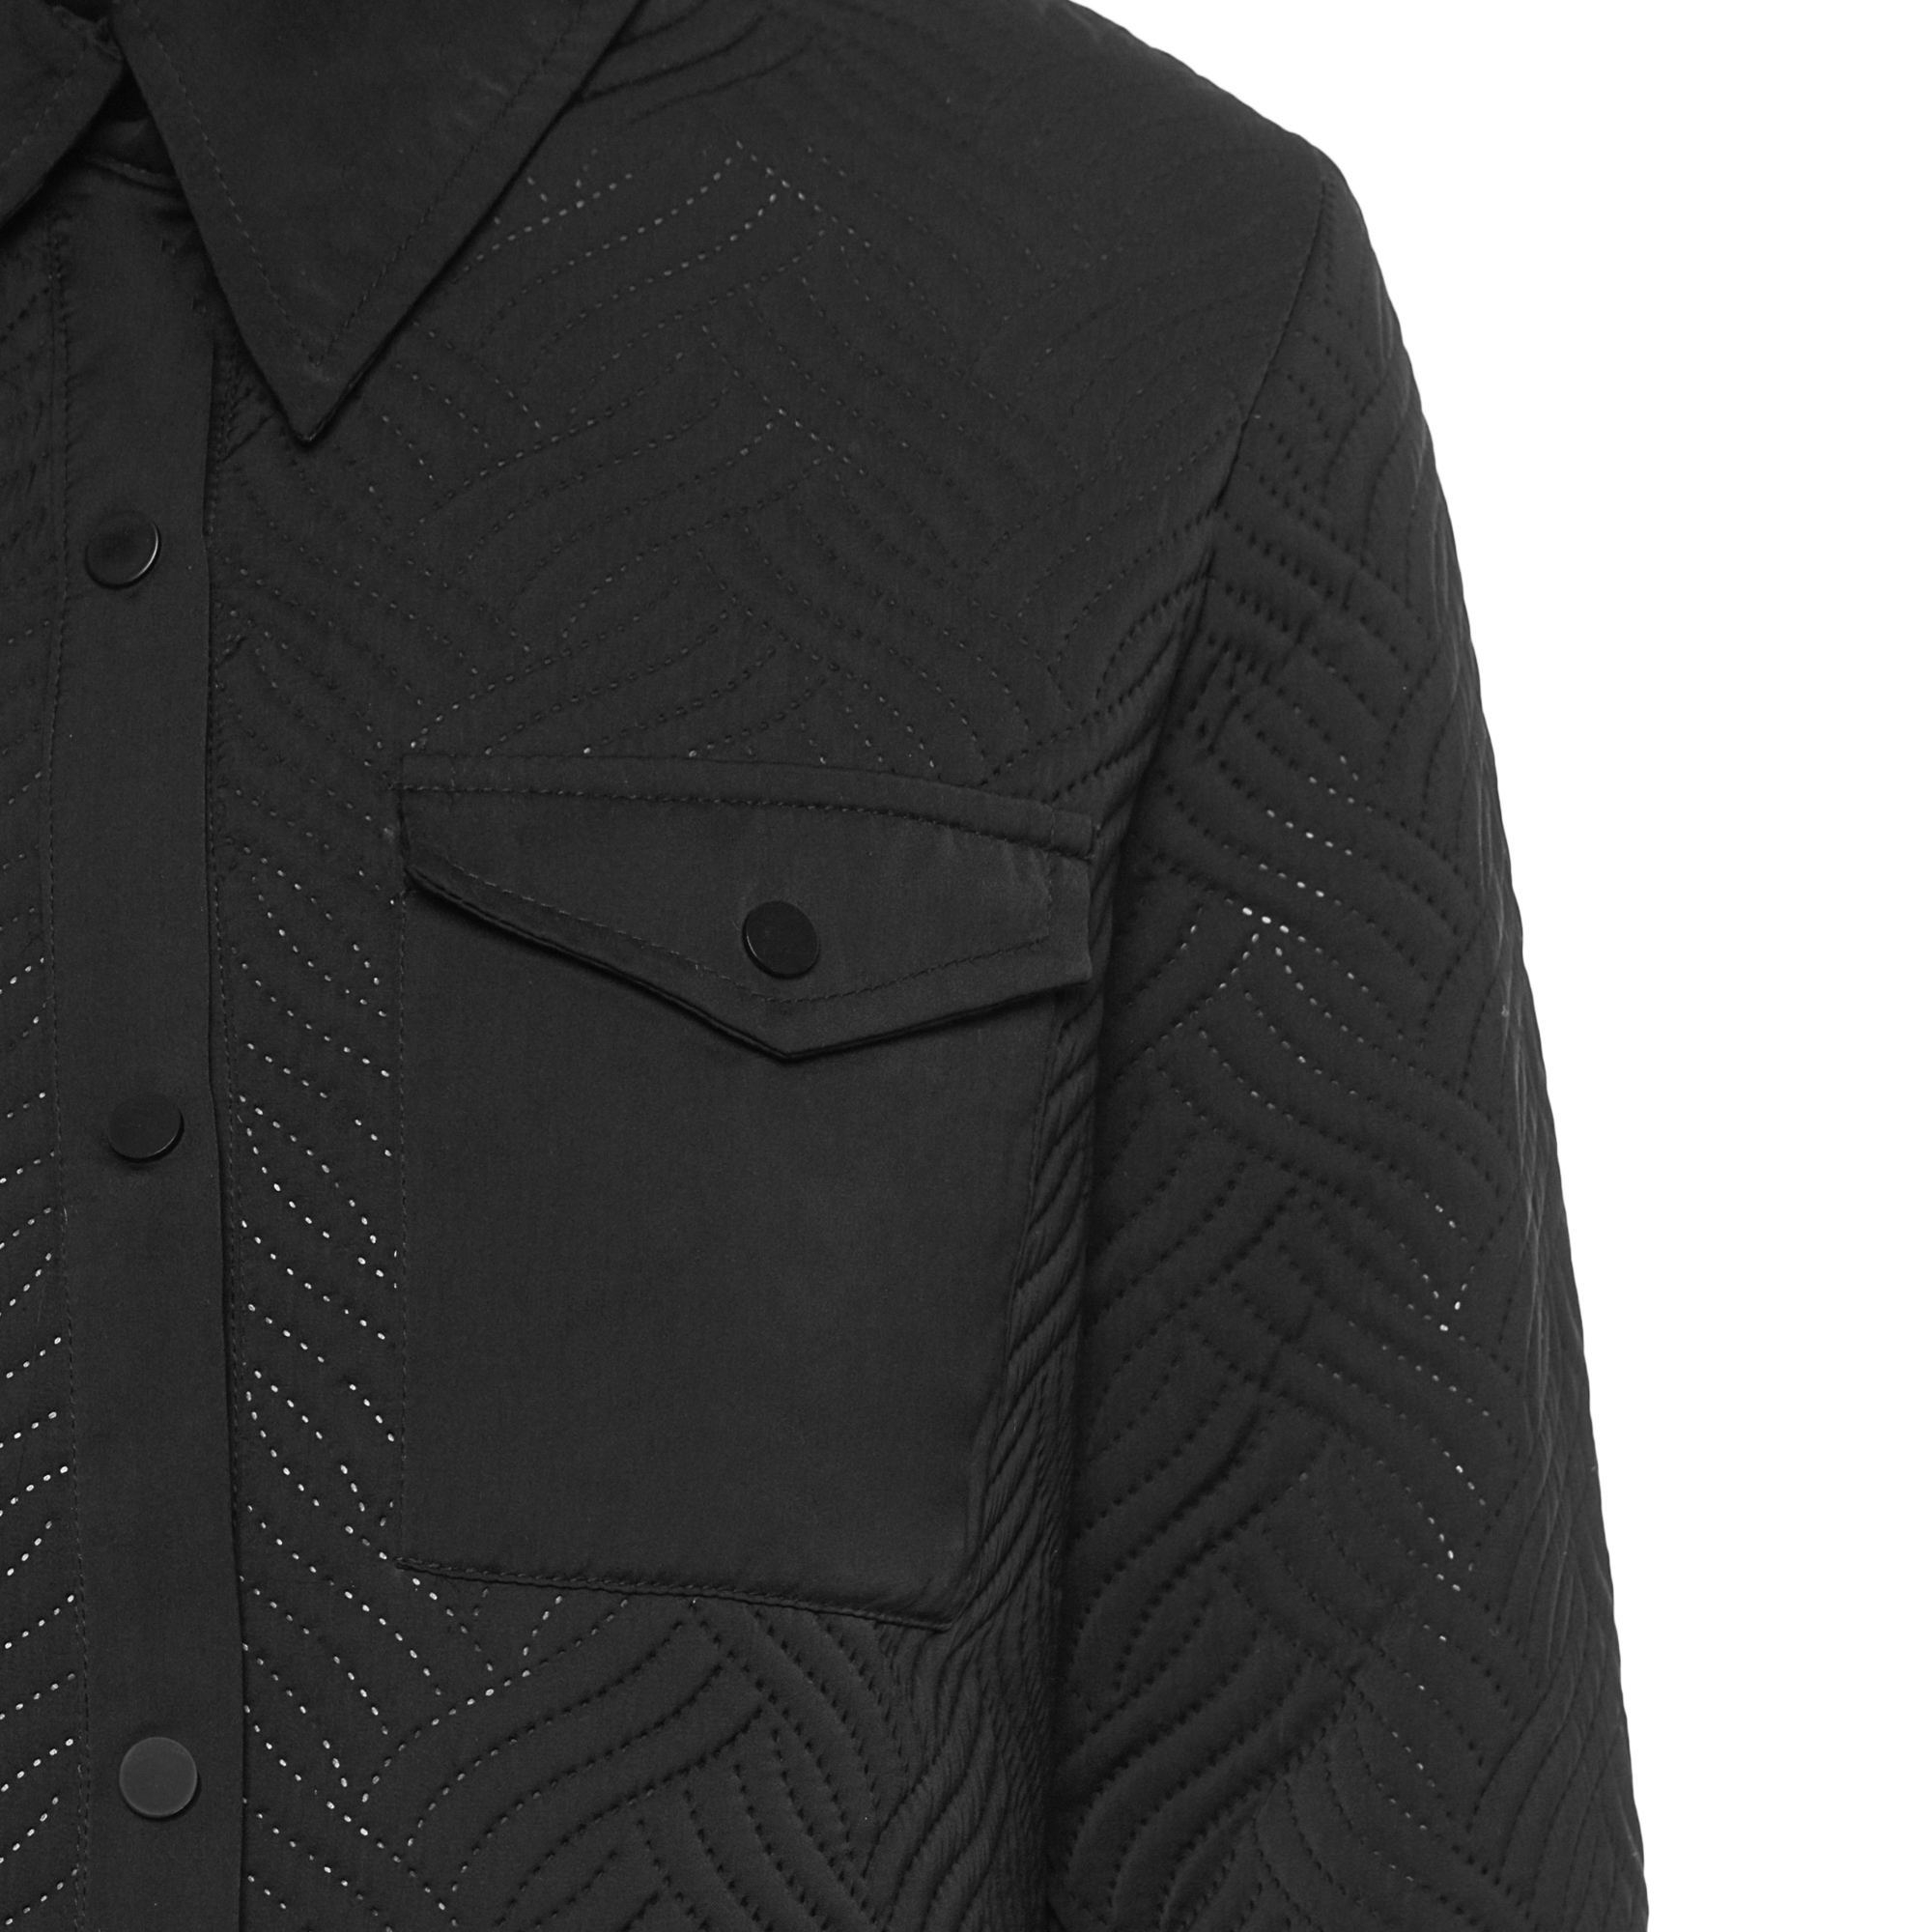 to en quilted wear mens techno s men bally ready in cotton jackets jacket shirt black quilt man it